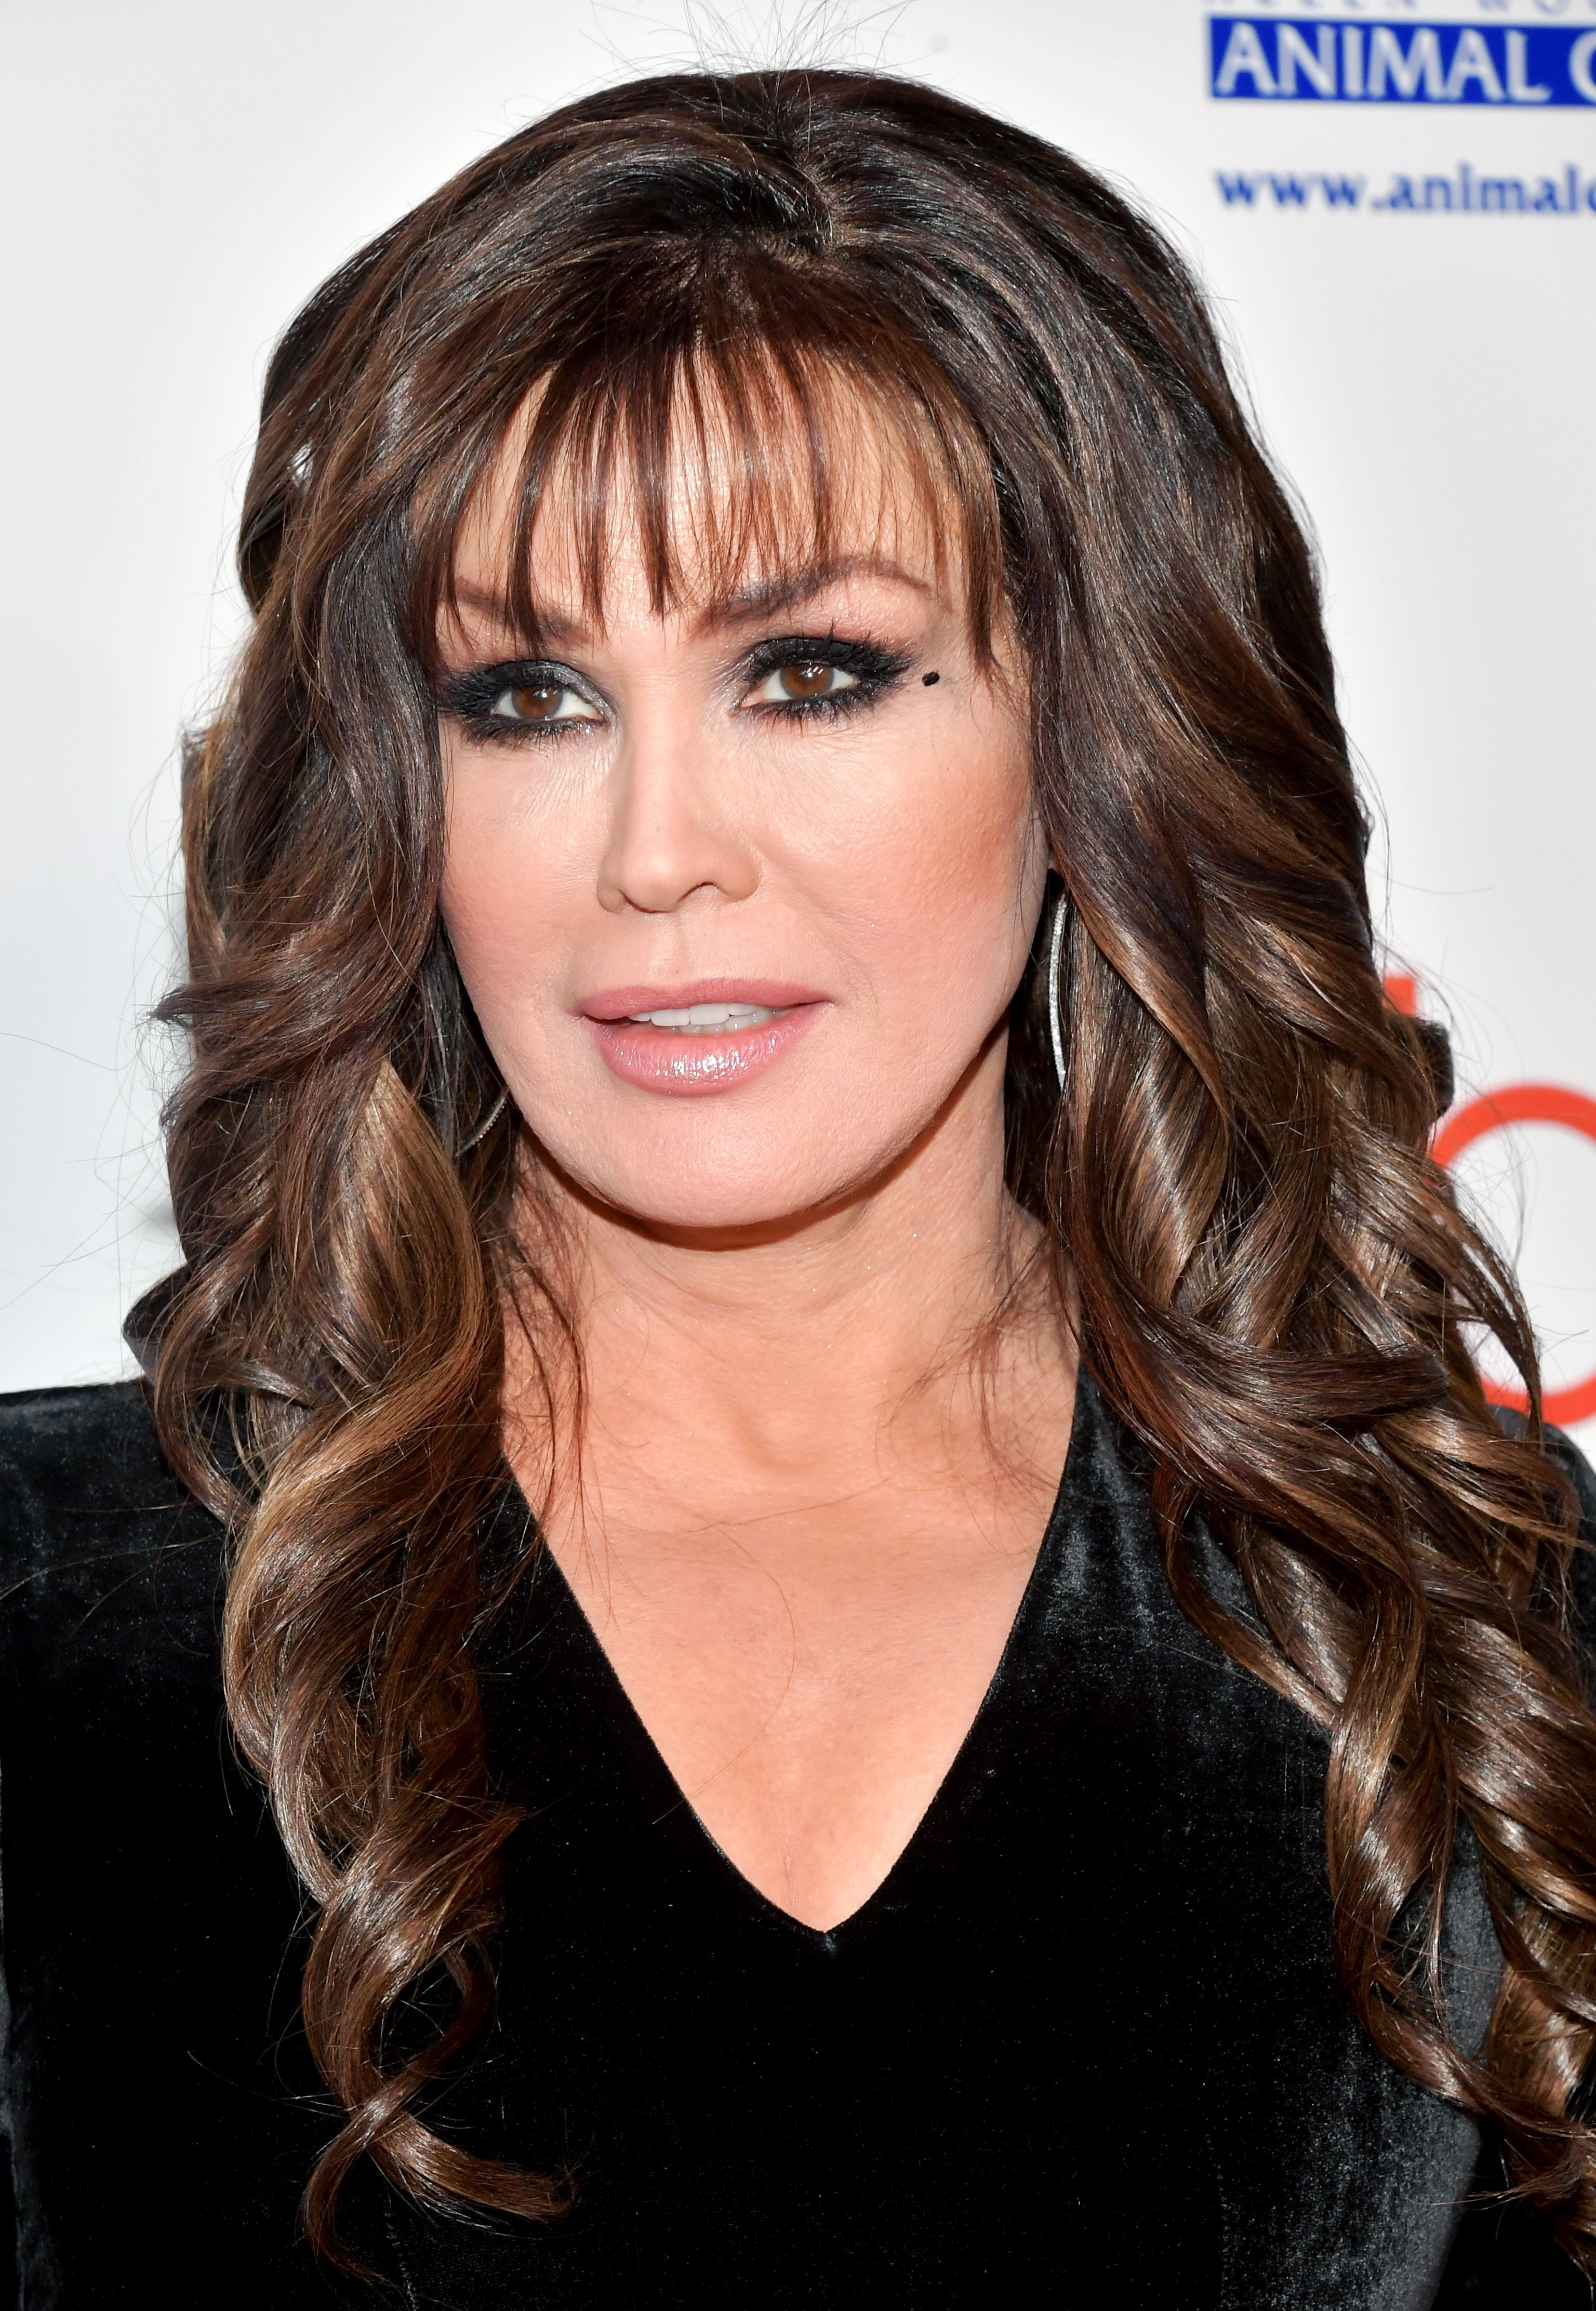 Marie Osmond attends the 2019 Hollywood Beauty Awards on February 17, 2019, in Los Angeles, California. | Source: Getty Images.